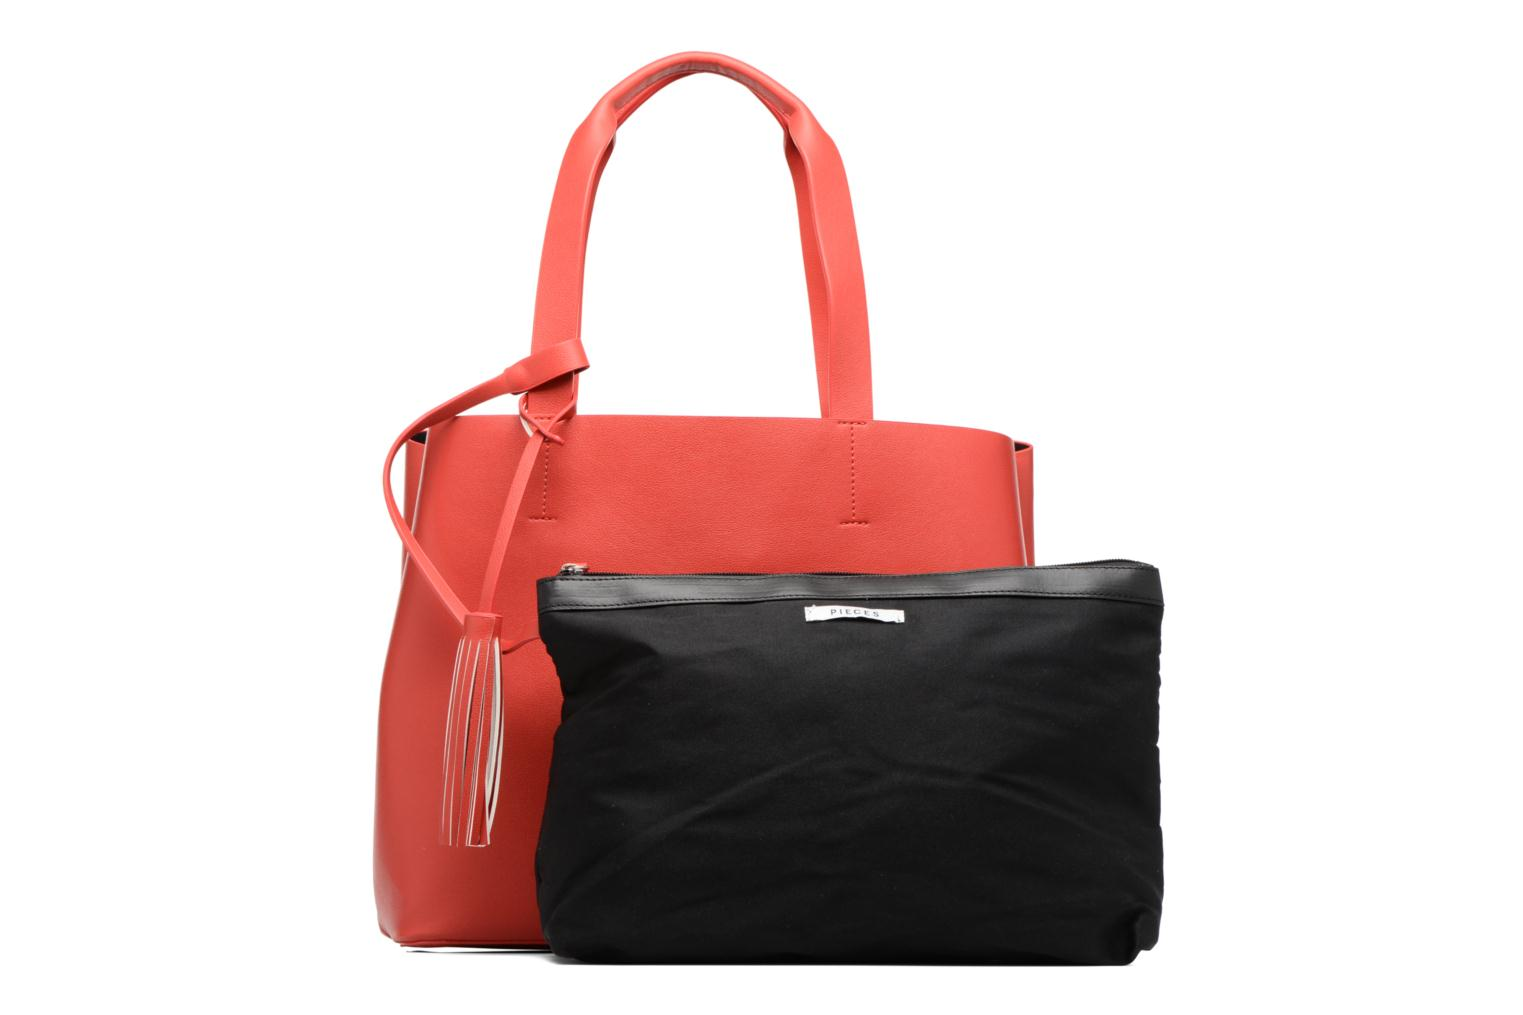 Illu Pieces Scarlet Pieces Shopper Scarlet Illu Flame Flame Shopper Pieces Wa1IqOYO